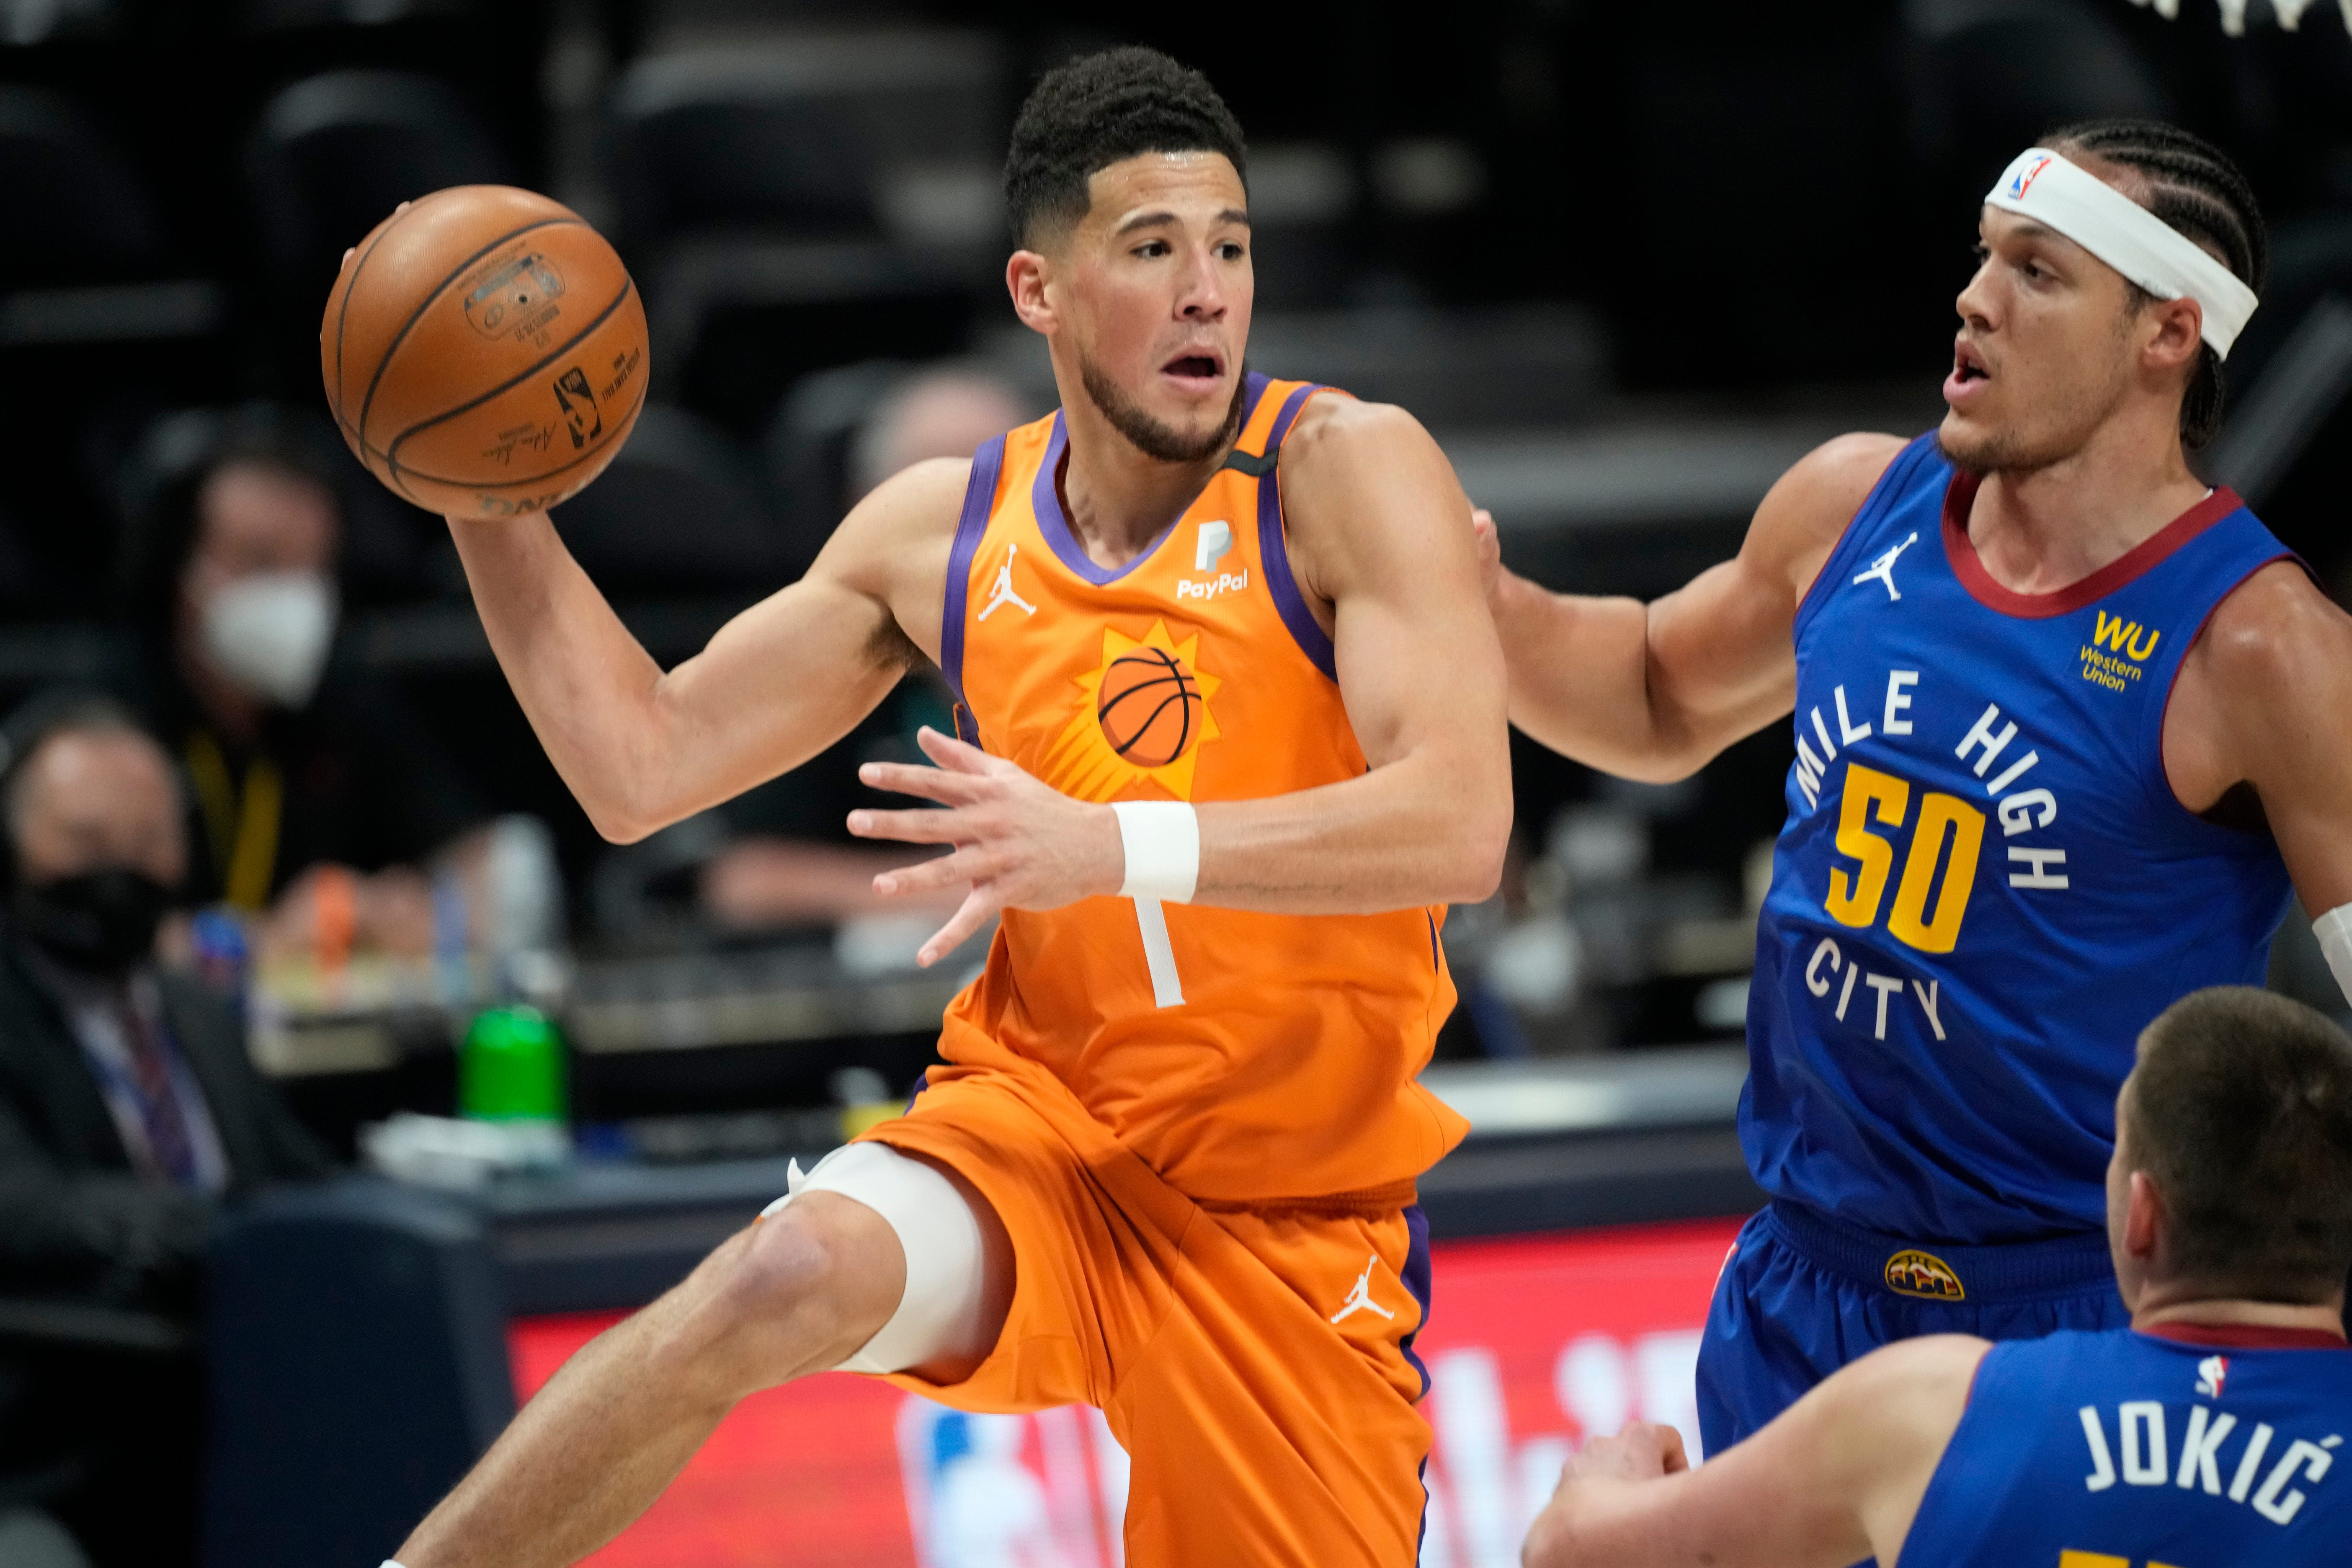 'Suns in 4' fight fan to receive tickets, autographed jersey from Suns' Devin Booker